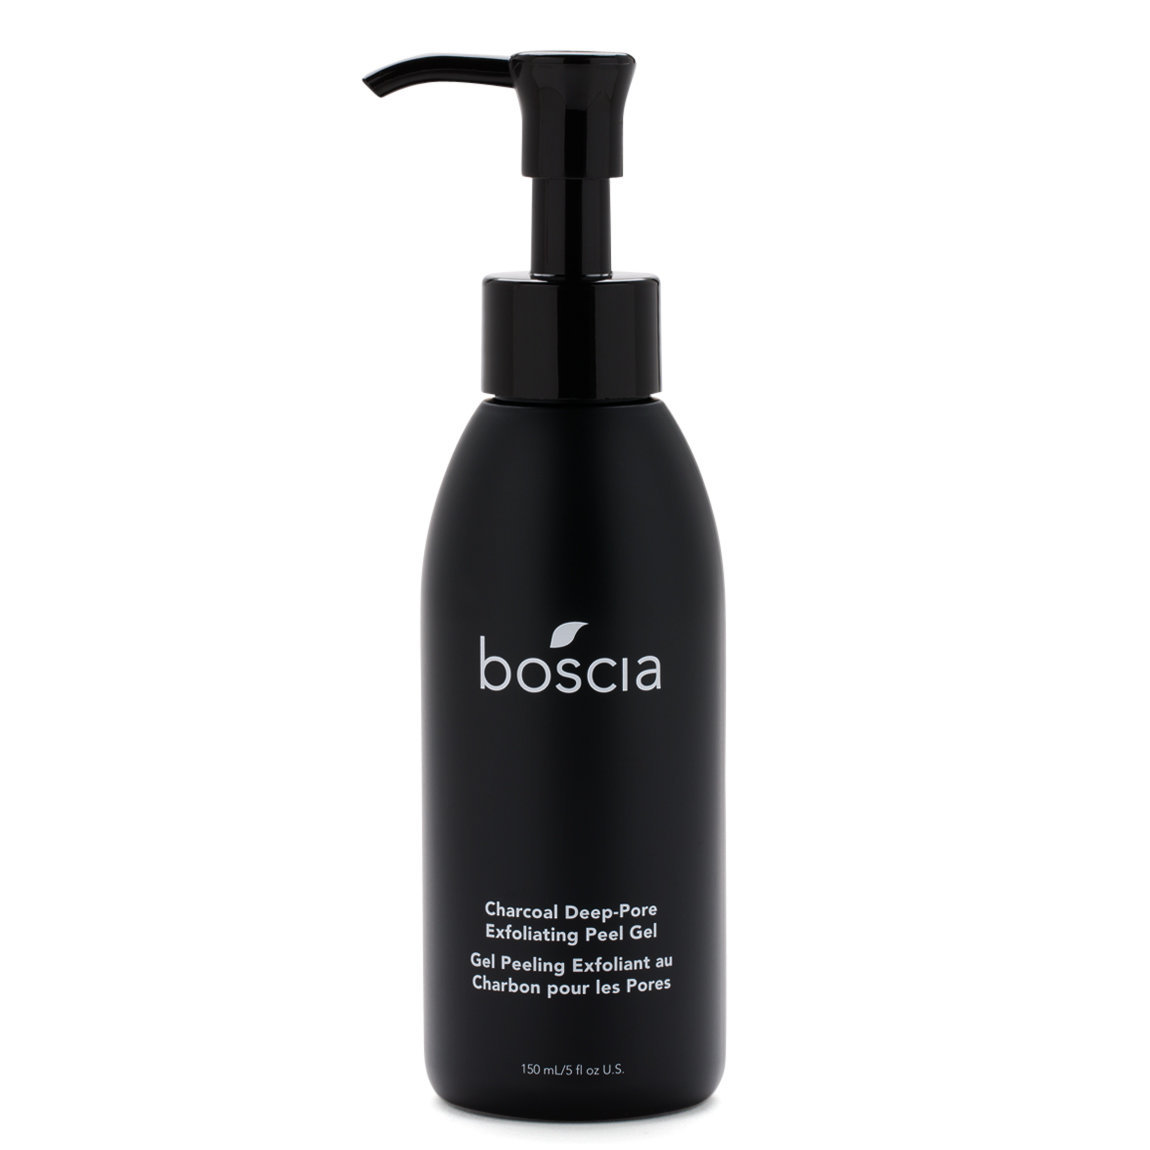 boscia Charcoal Deep-Pore Exfoliating Peel Gel product swatch.